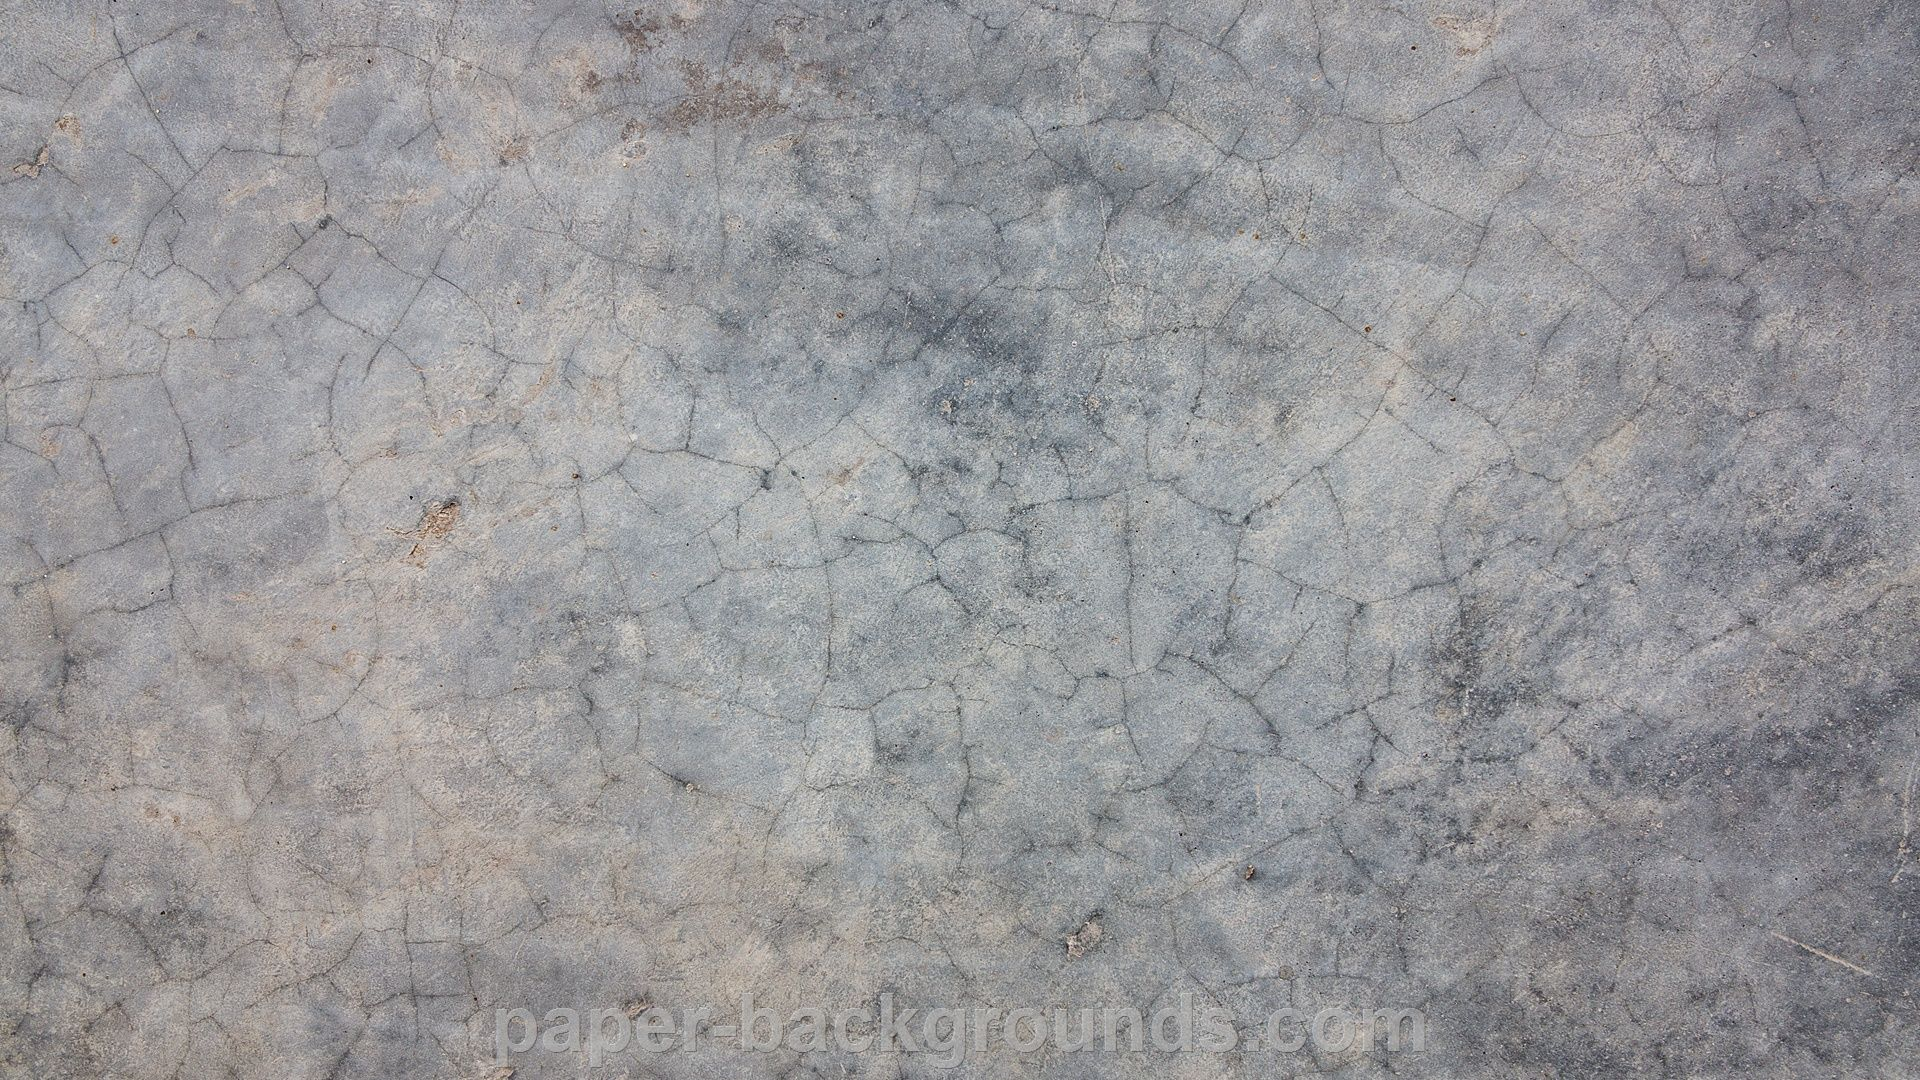 Cracked Concrete Floor Texture Hd Paper Backgrounds